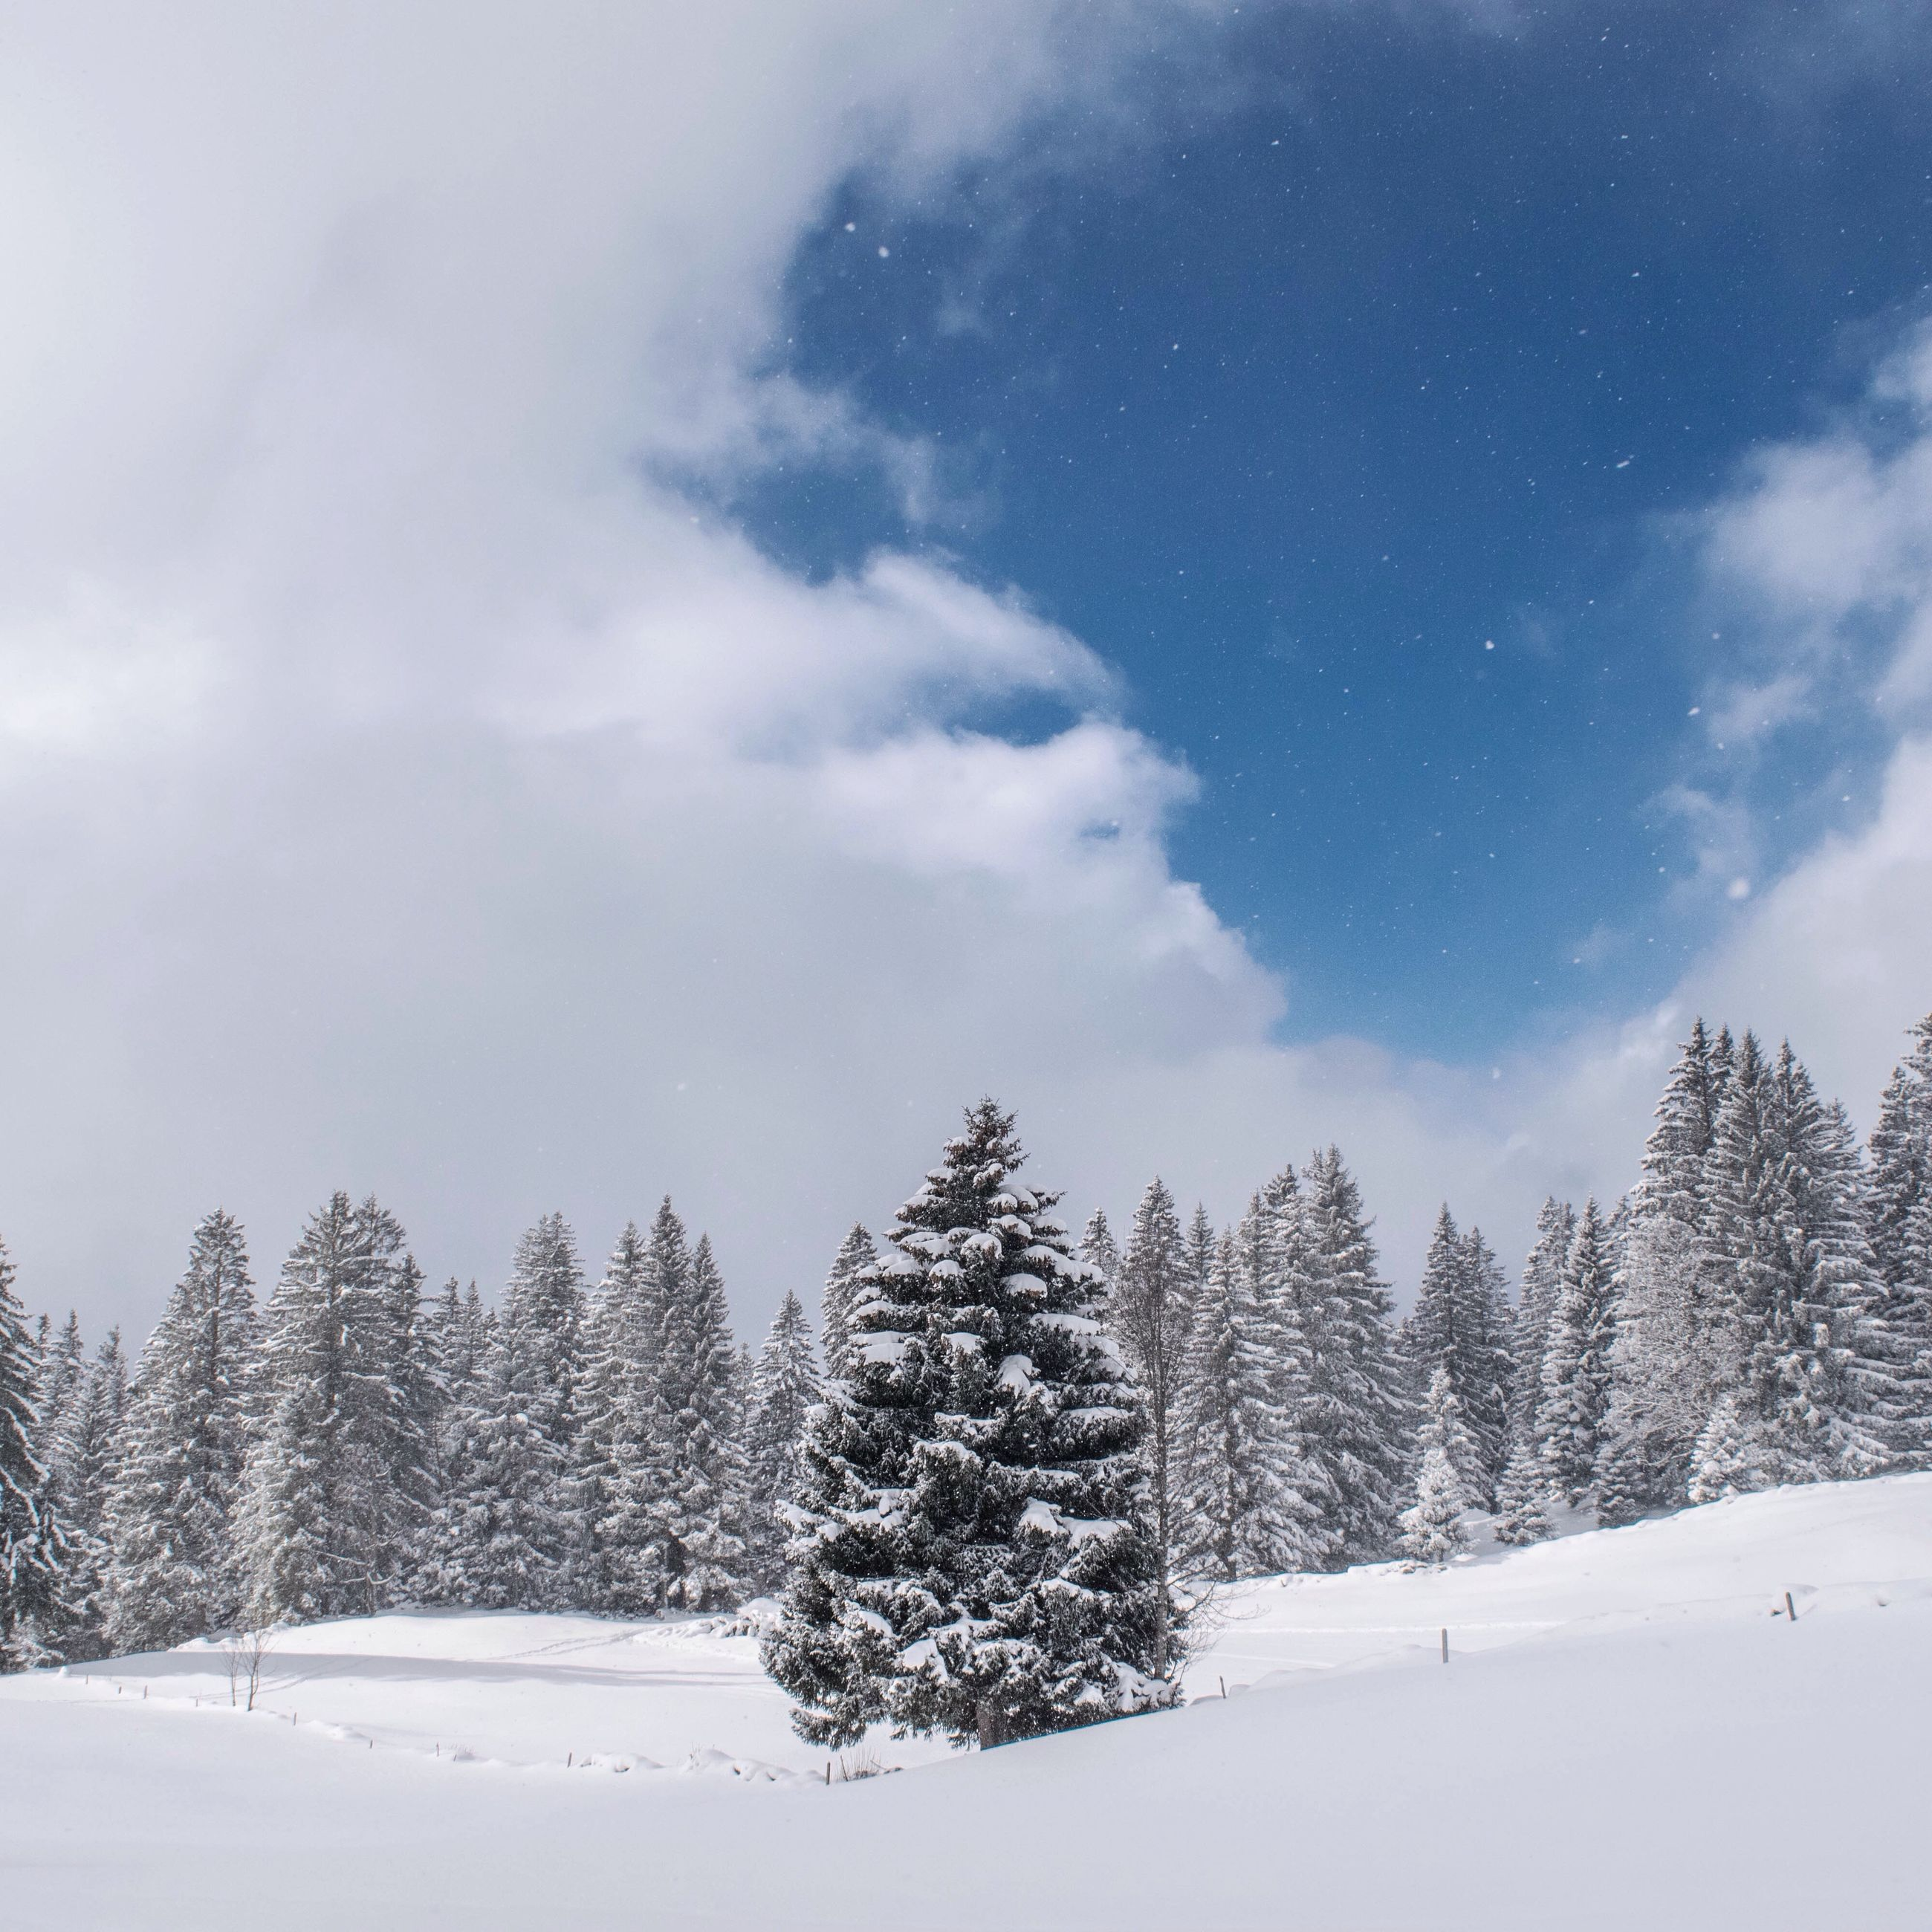 snow, winter, cold temperature, tree, season, weather, tranquility, sky, tranquil scene, nature, covering, beauty in nature, scenics, landscape, white color, cloud - sky, field, growth, covered, non-urban scene